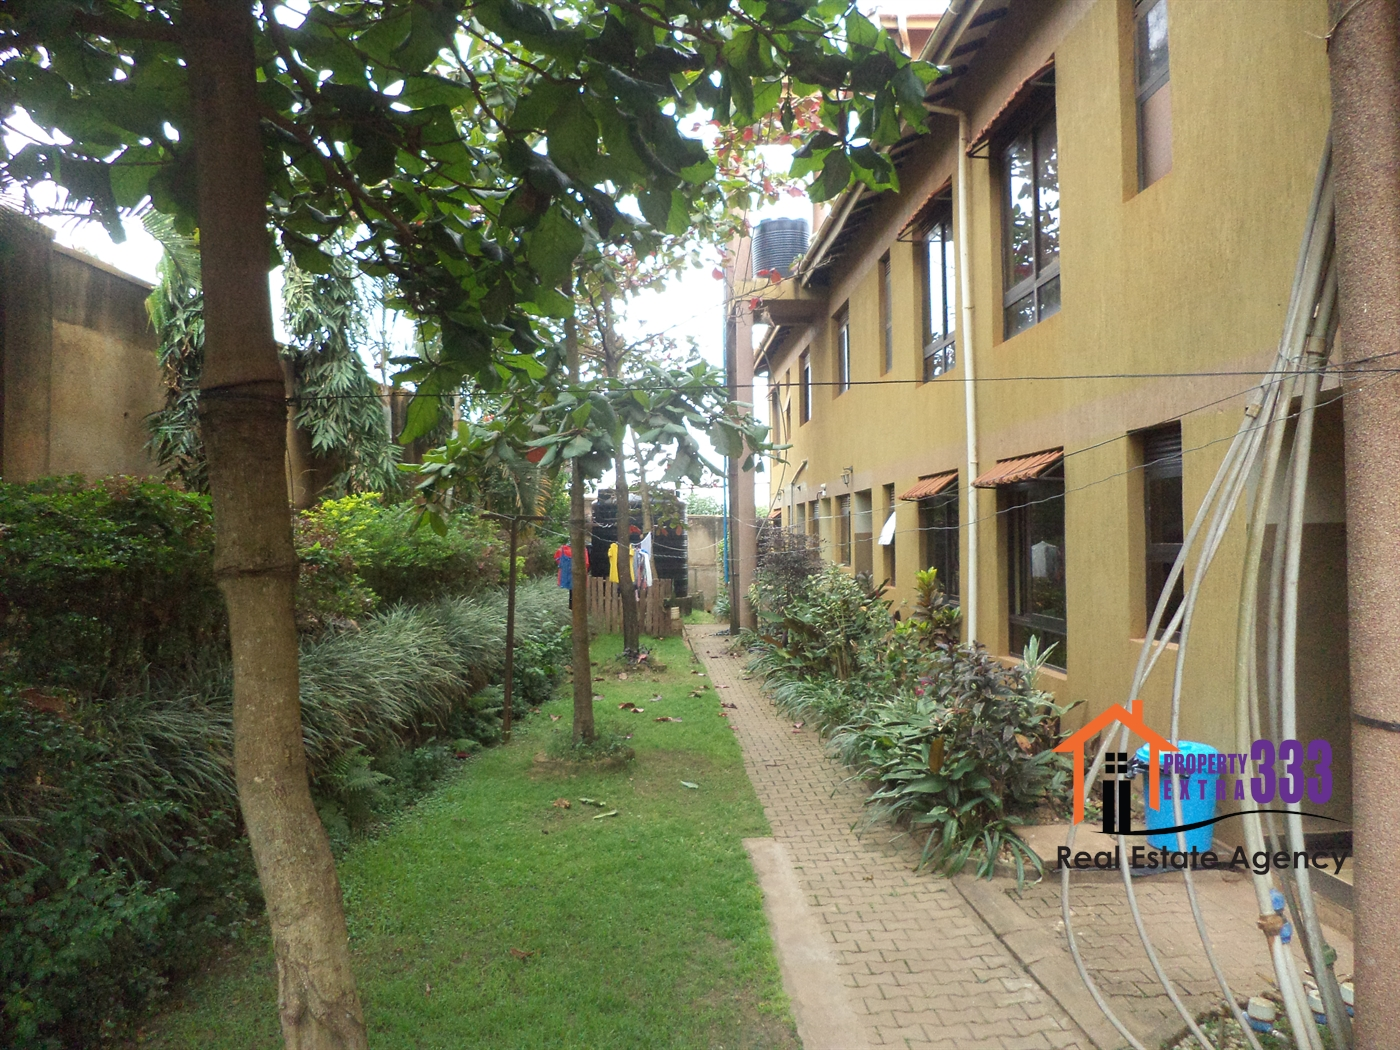 Duplex for rent in Kisaasi Kampala